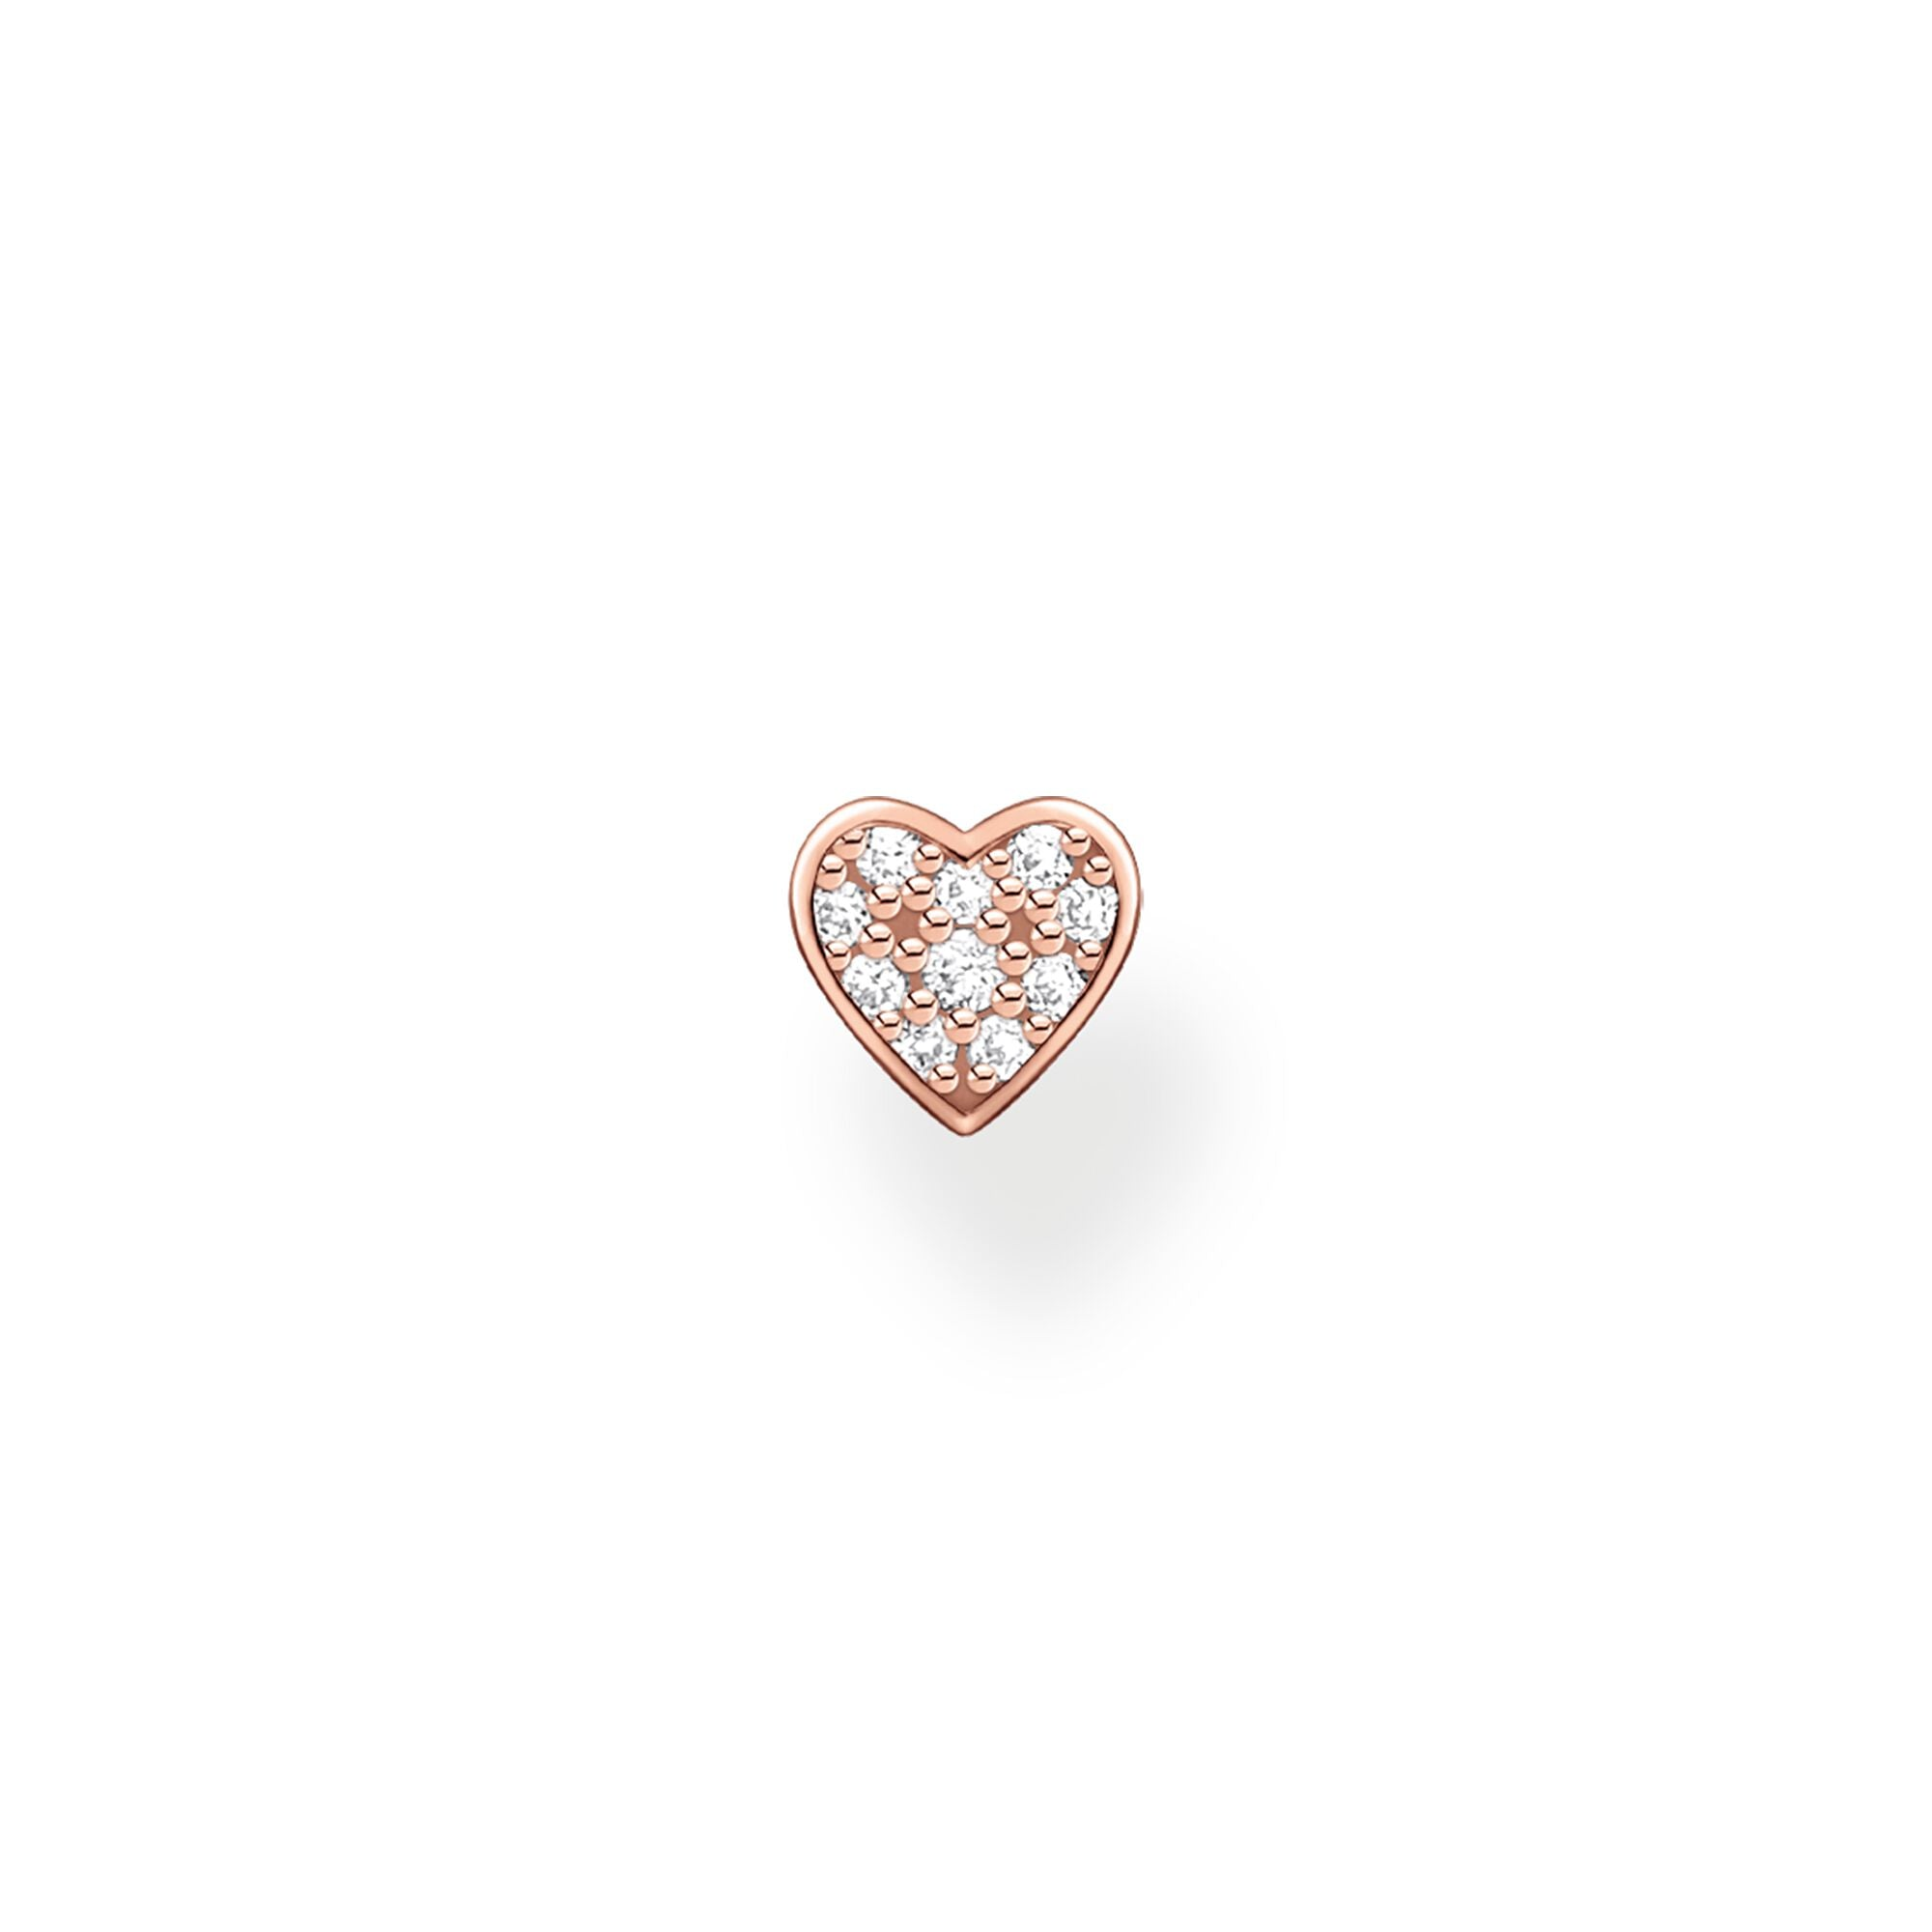 Thomas Sabo, Sterling Silver, Rose Gold Plated, Cubic Zirconia, Pave, Heart, Single Earring Stud, Push backing, Ottawa